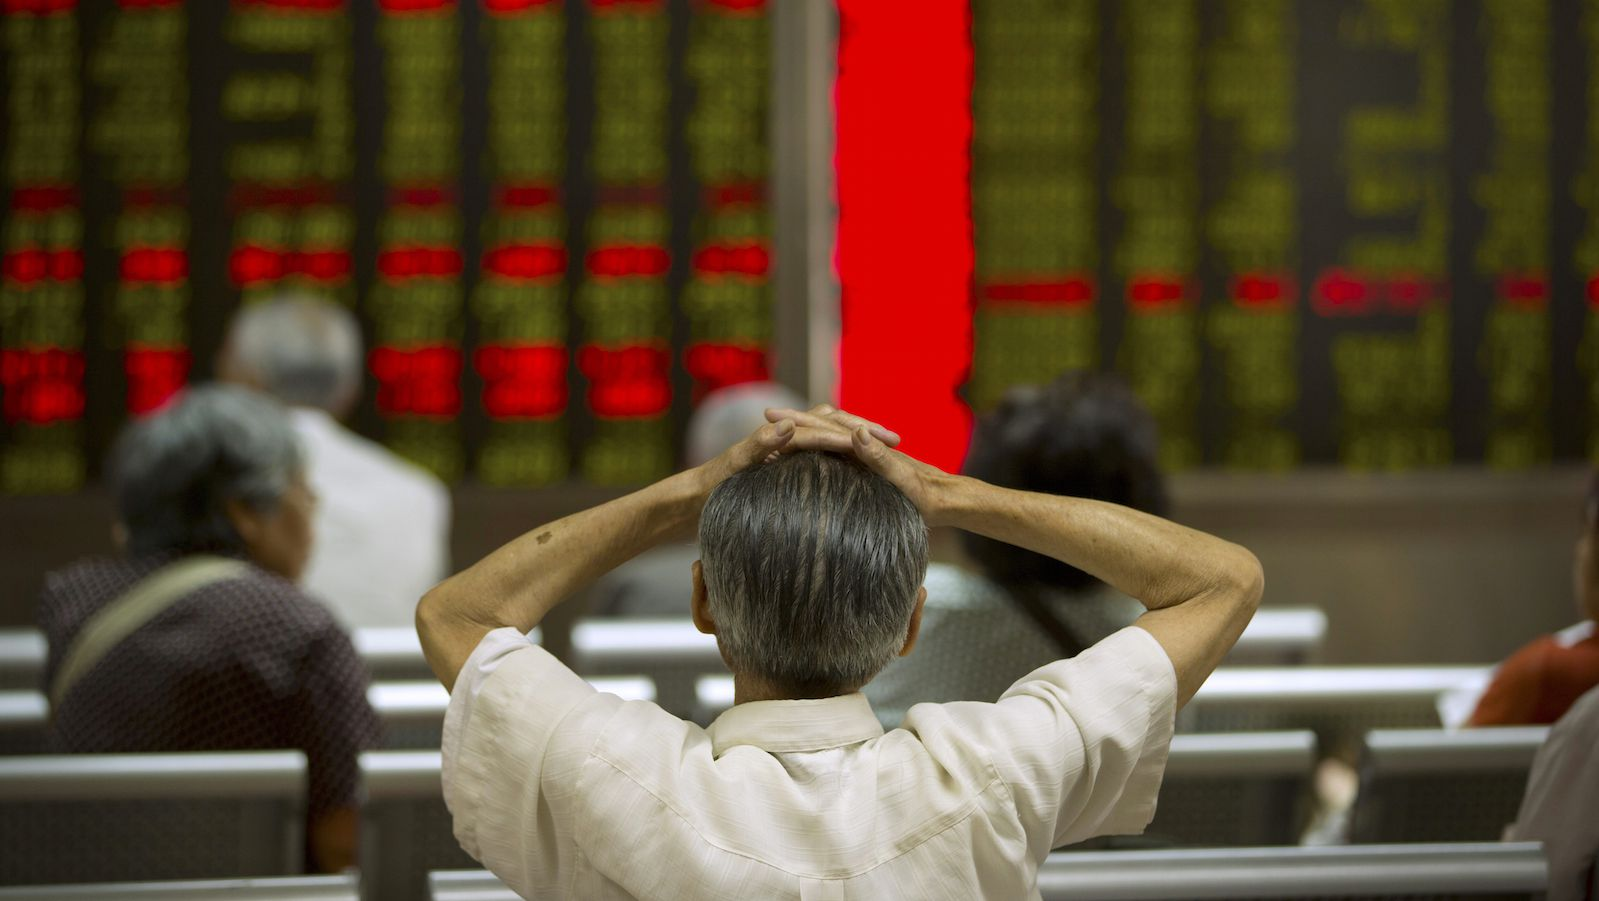 A Chinese investor monitors displays of stock information at a brokerage house in Beijing, Tuesday, July 28, 2015. Shanghai stocks were volatile Tuesday after falling the most in eight years the day before while other Asian markets also flitted between gains and losses. (AP Photo/Mark Schiefelbein)